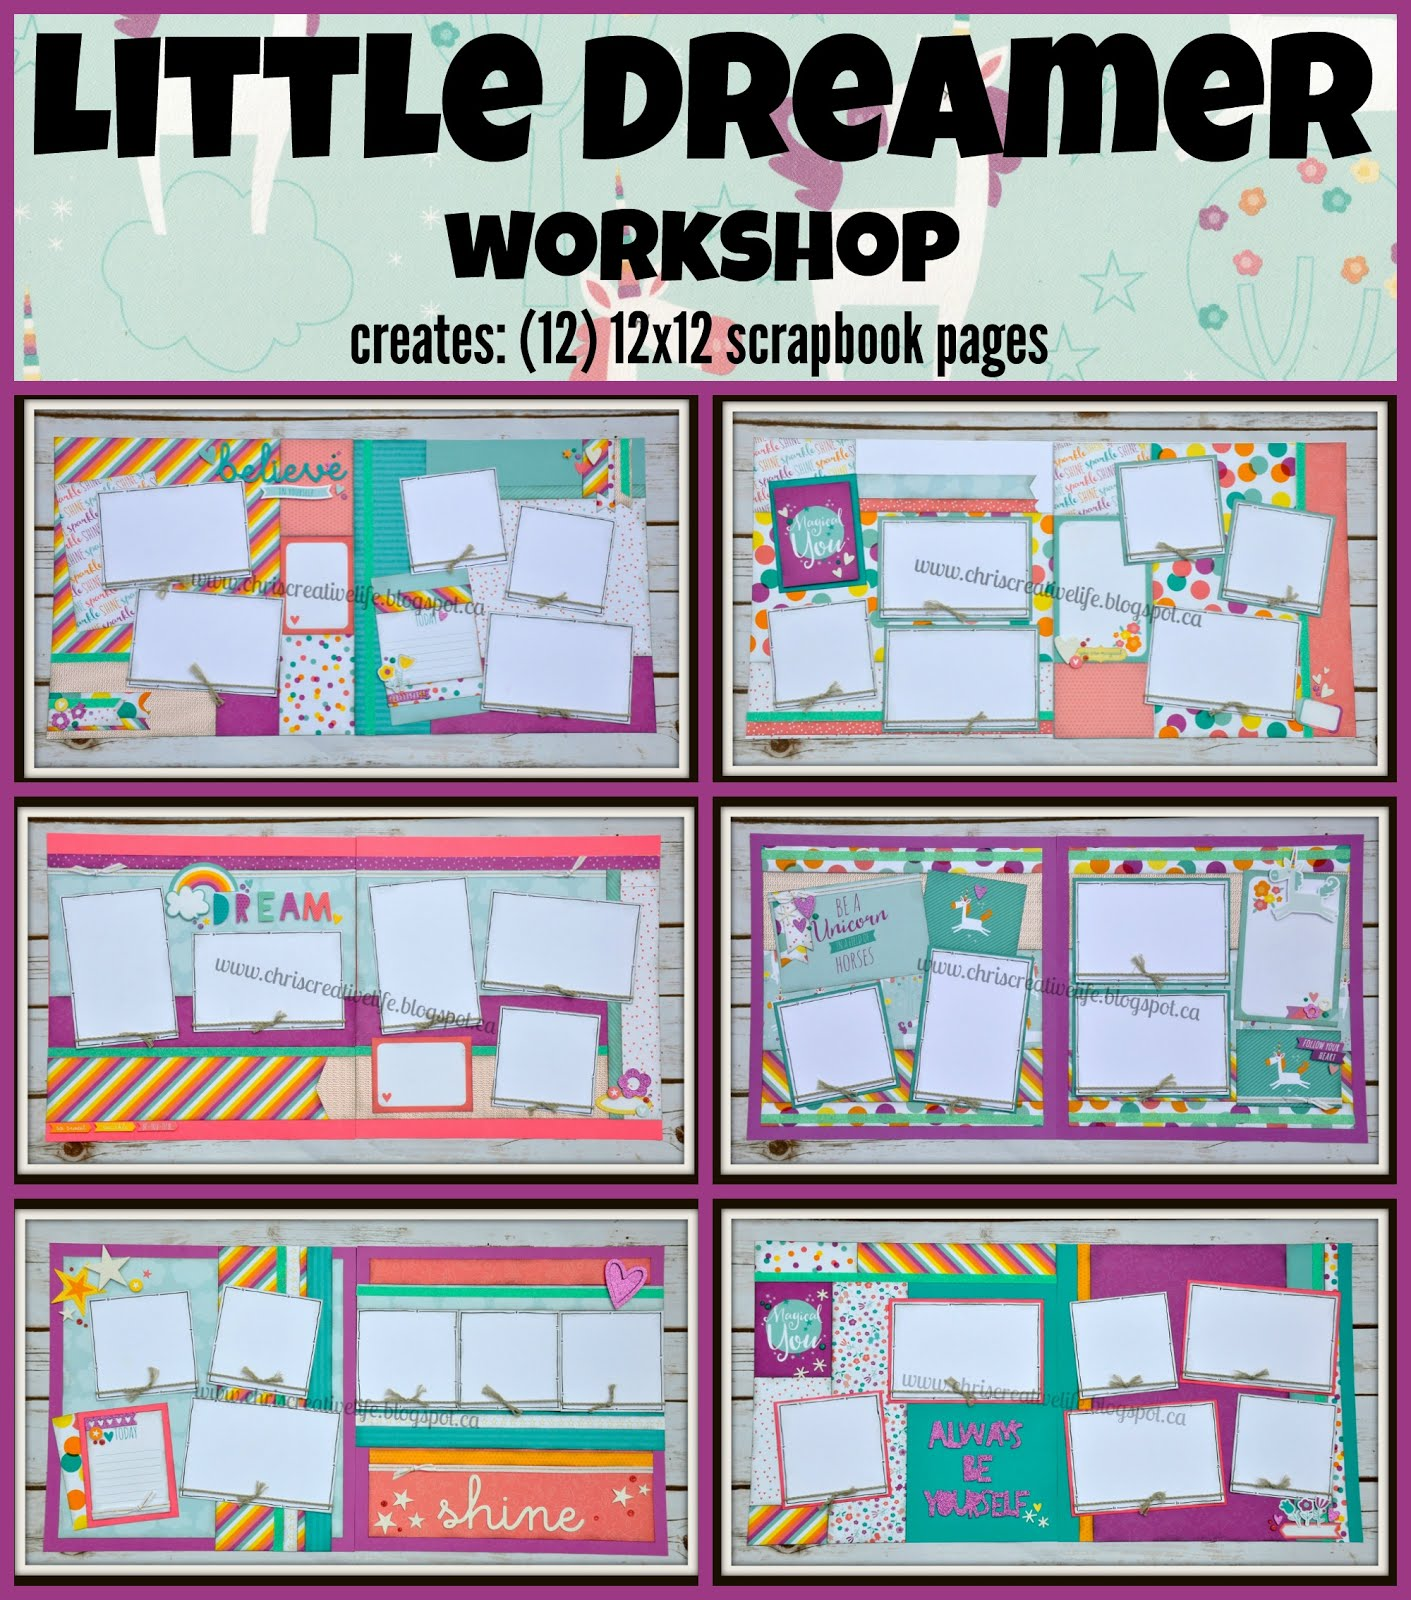 Little Dreamer workshop